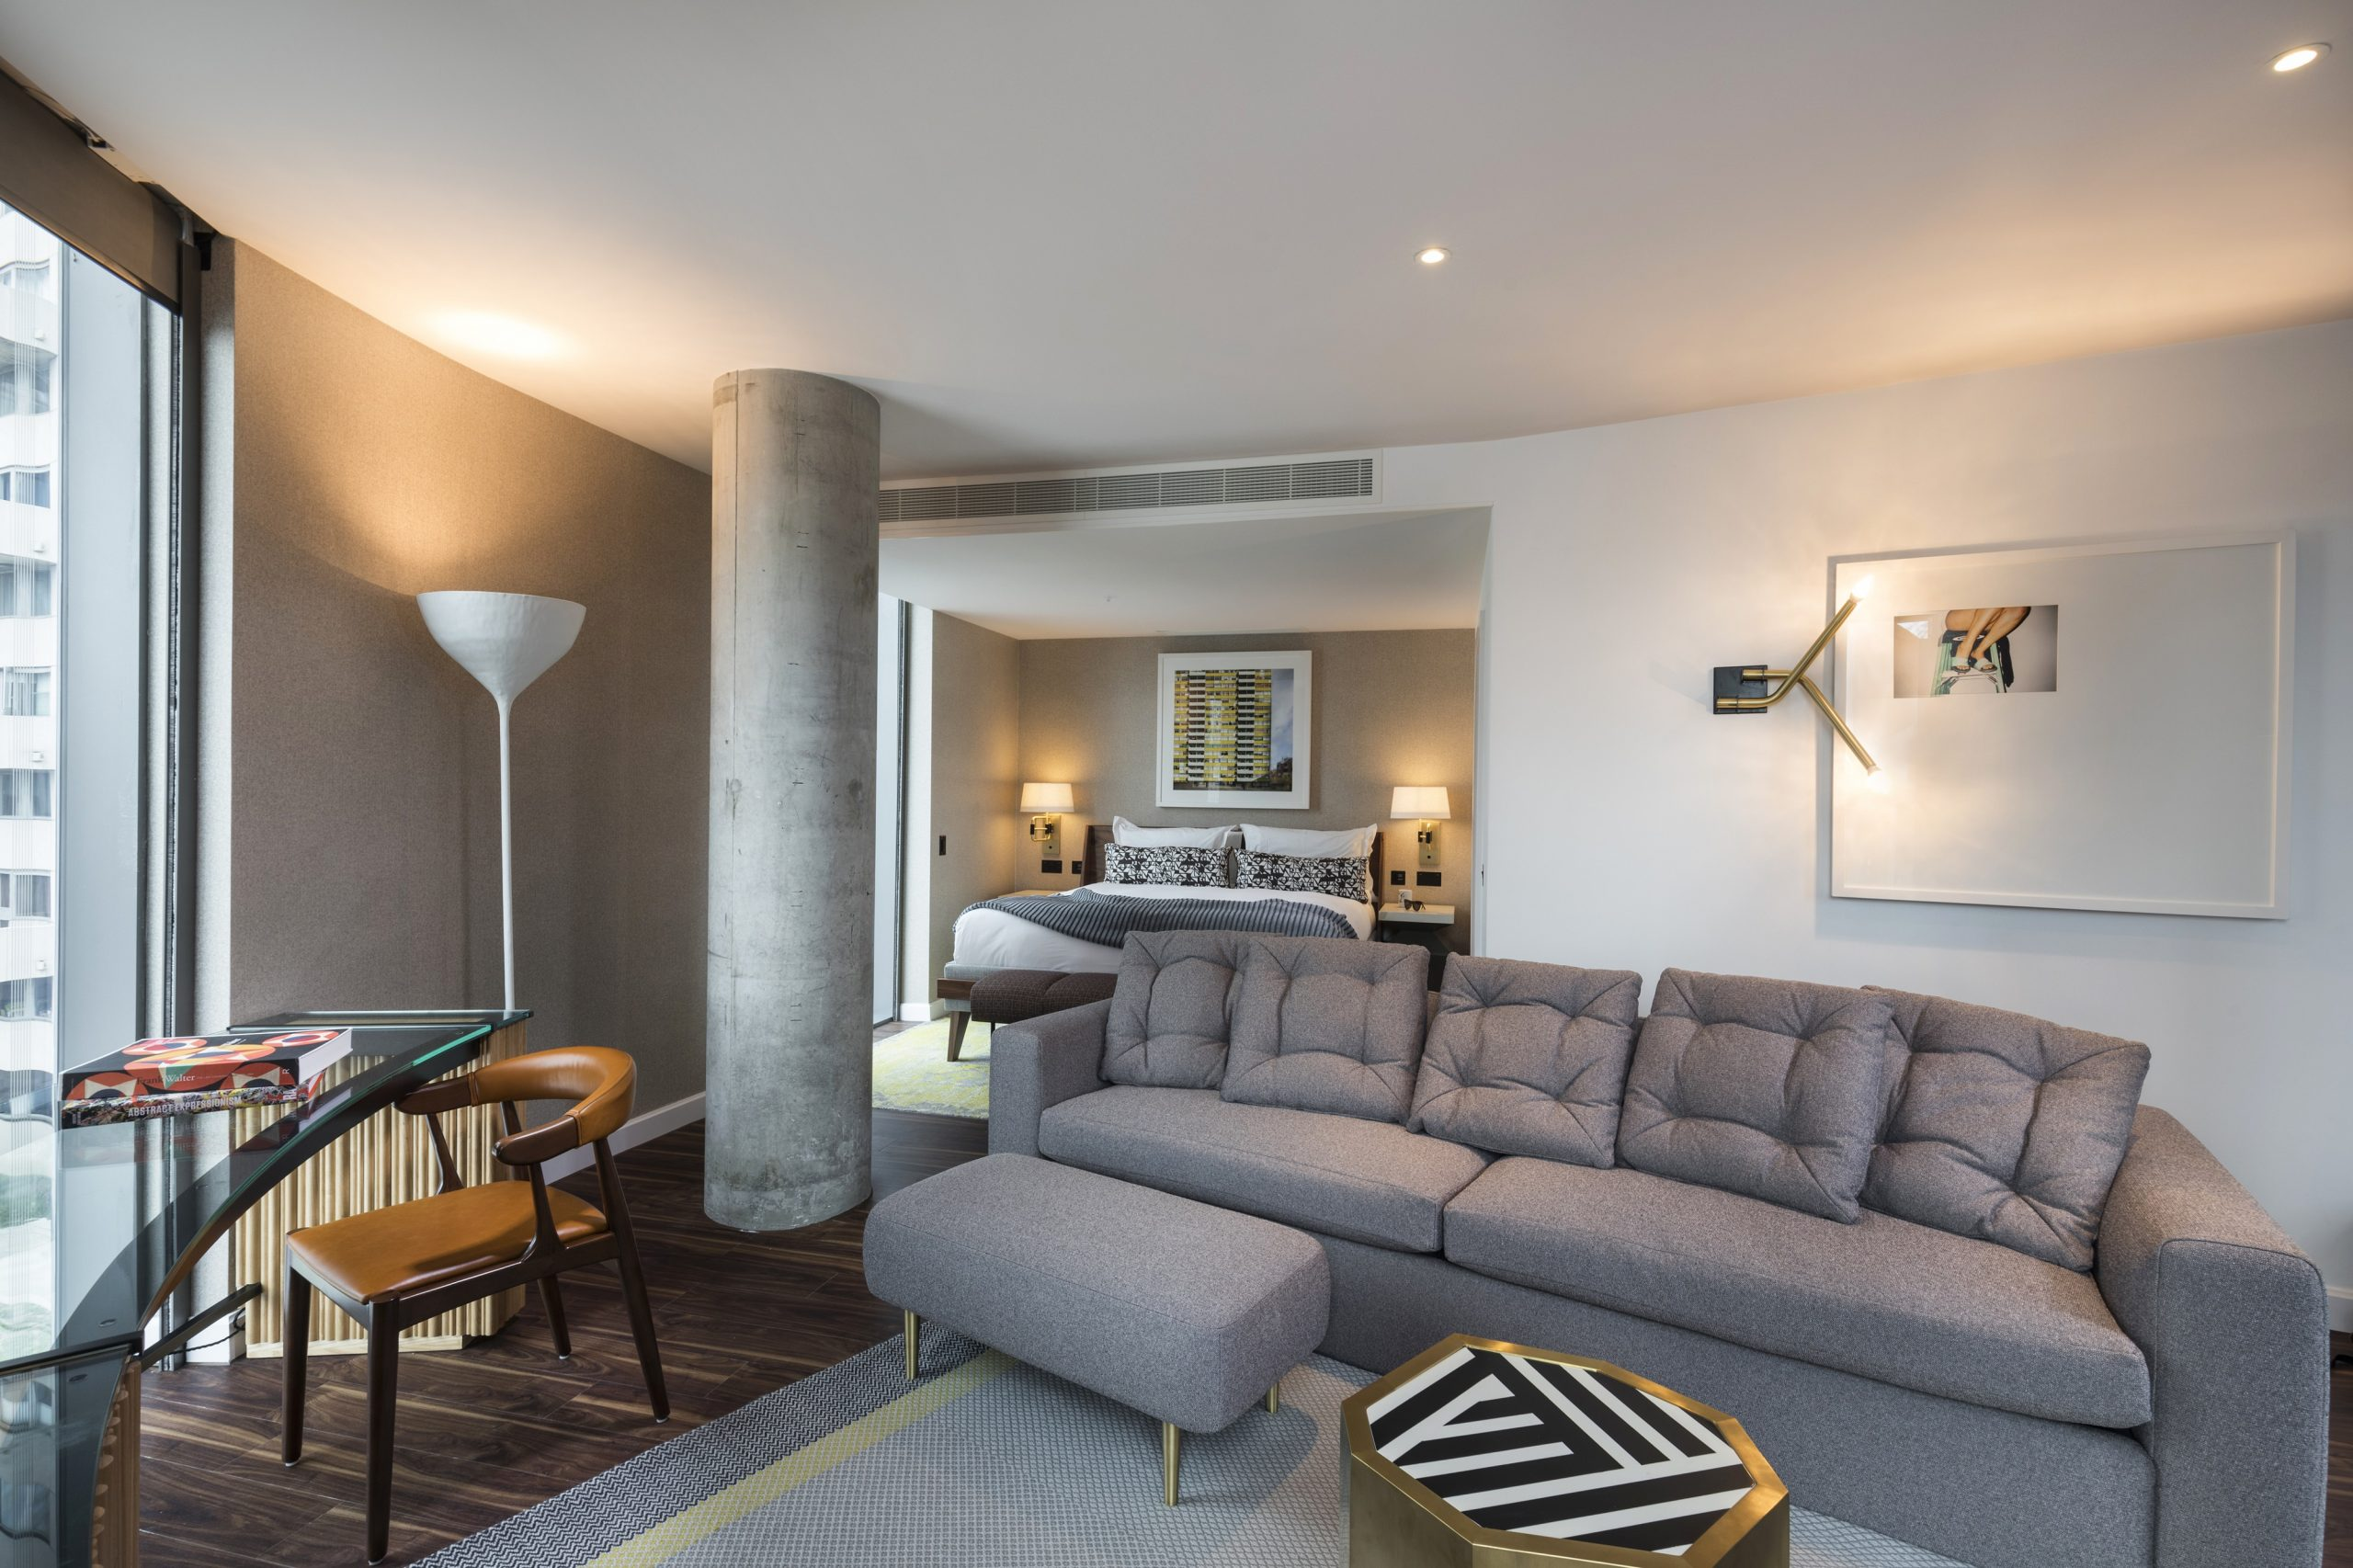 The Hotel Review: Bankside Hotel, South Bank, London